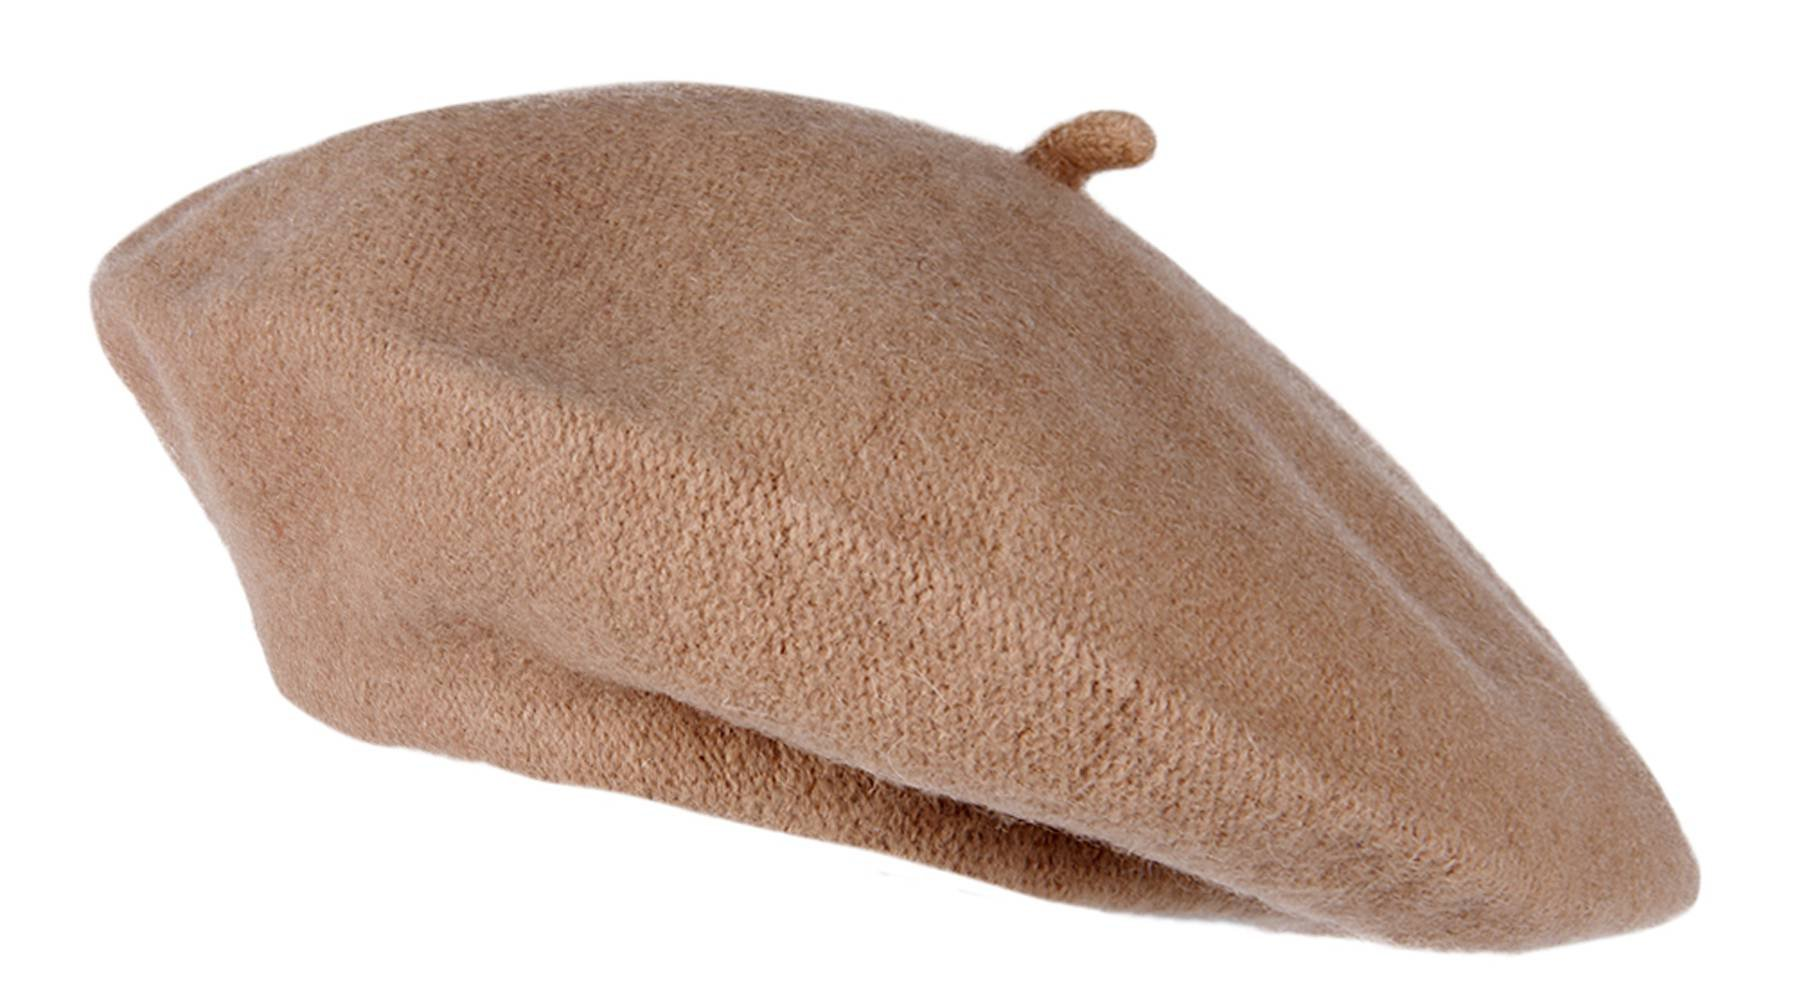 TOP HEADWEAR Topheadwear Wool French Beret, Camel